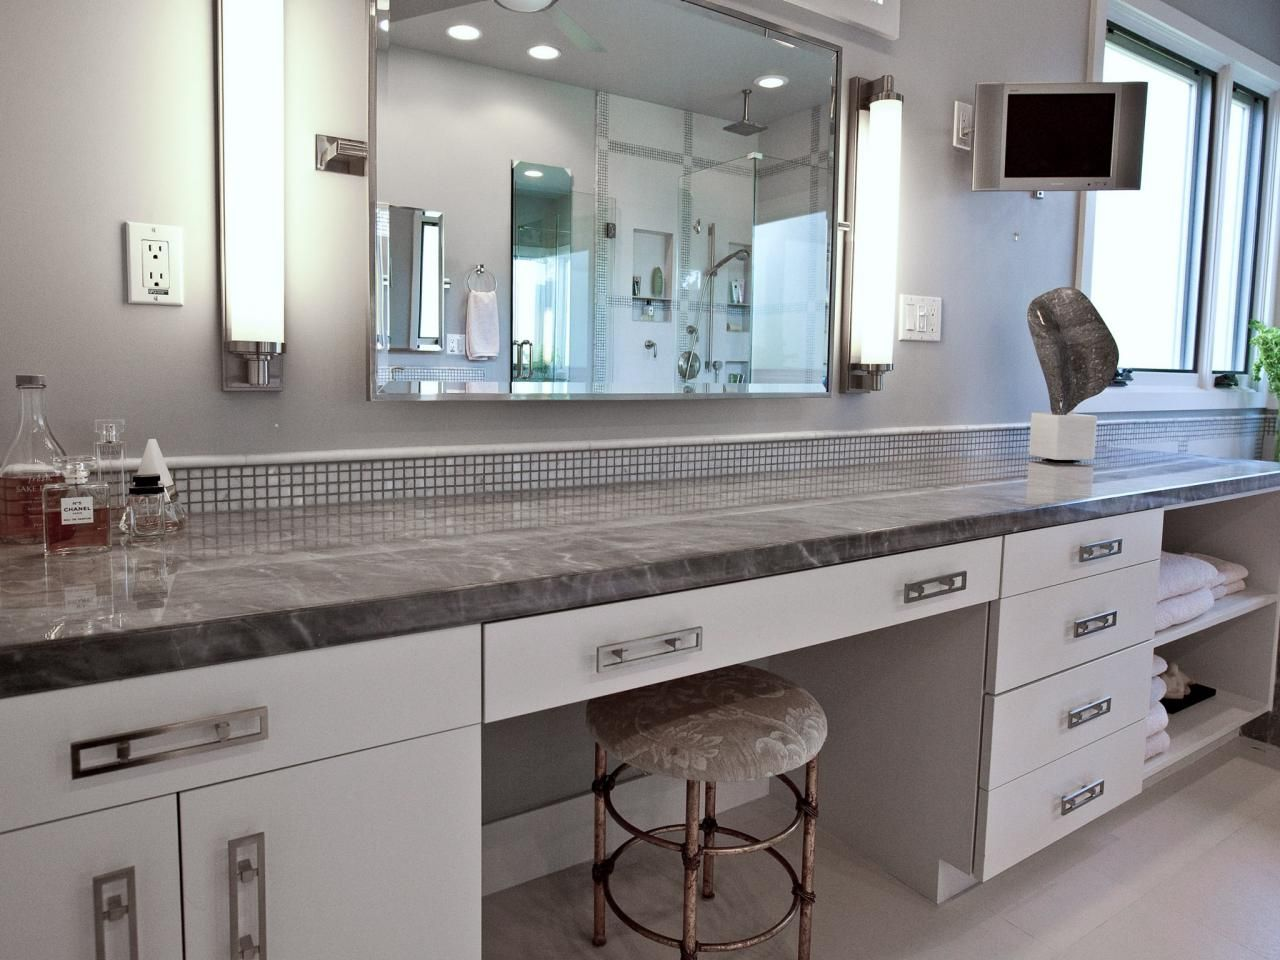 This Modern Bathroom Features A Long White Vanity With A